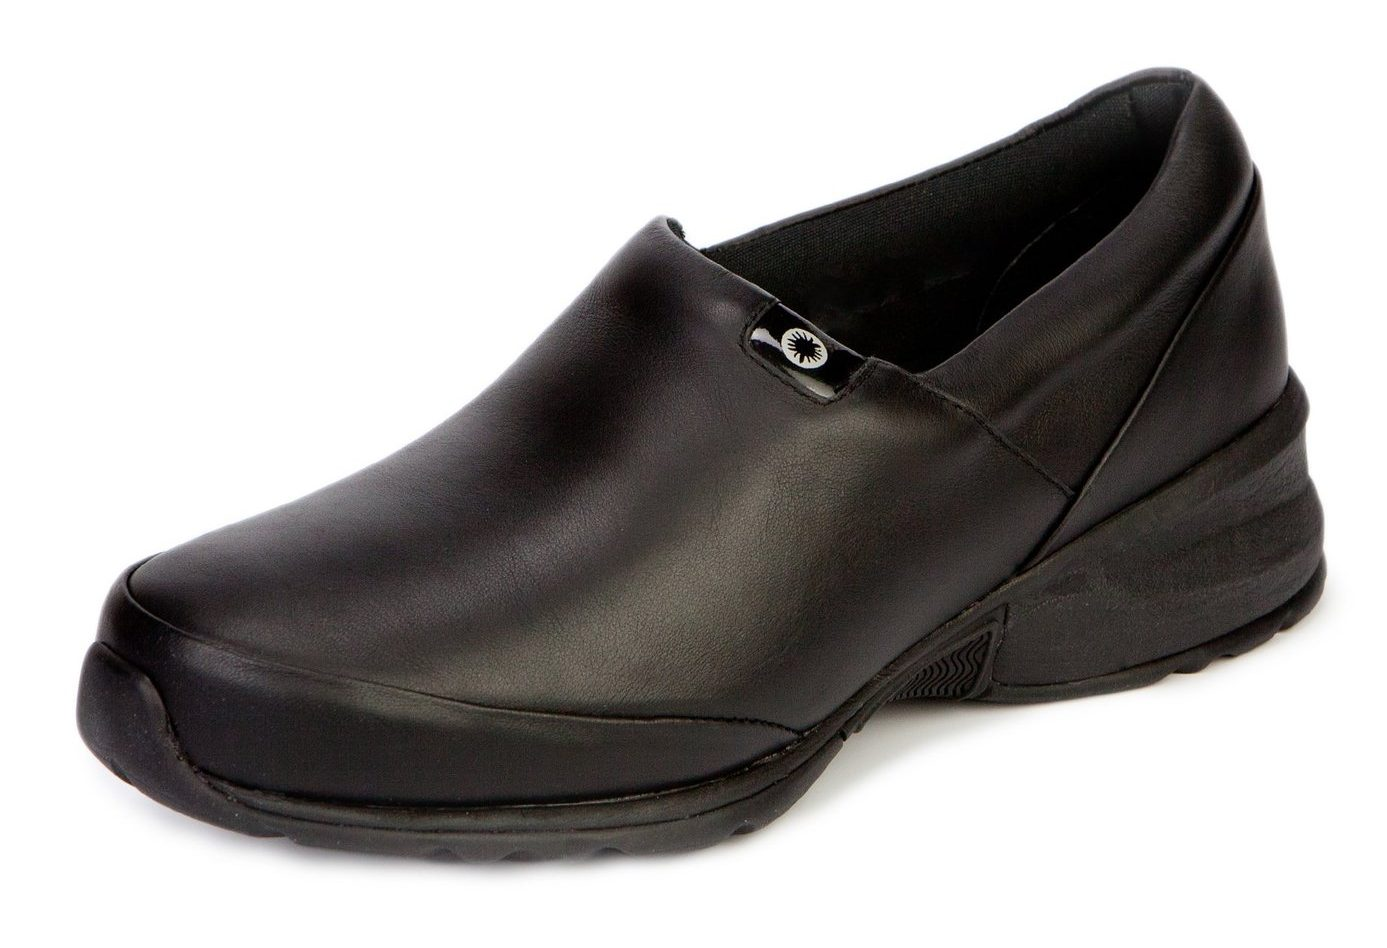 Akesso Women's Helia Smooth Leather Slip on